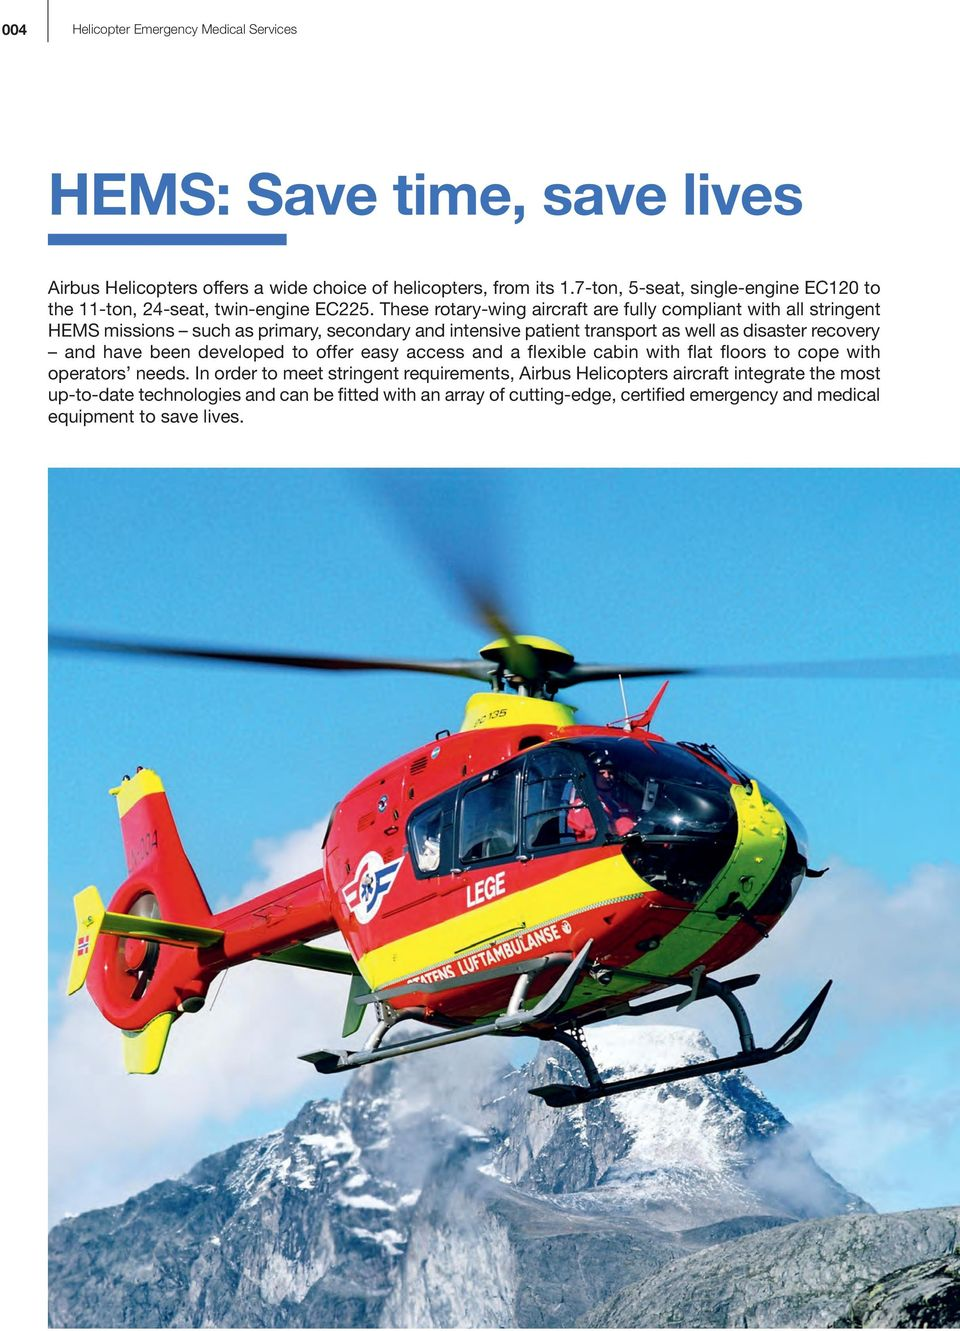 These rotary-wing aircraft are fully compliant with all stringent HEMS missions such as primary, secondary and intensive patient transport as well as disaster recovery and have